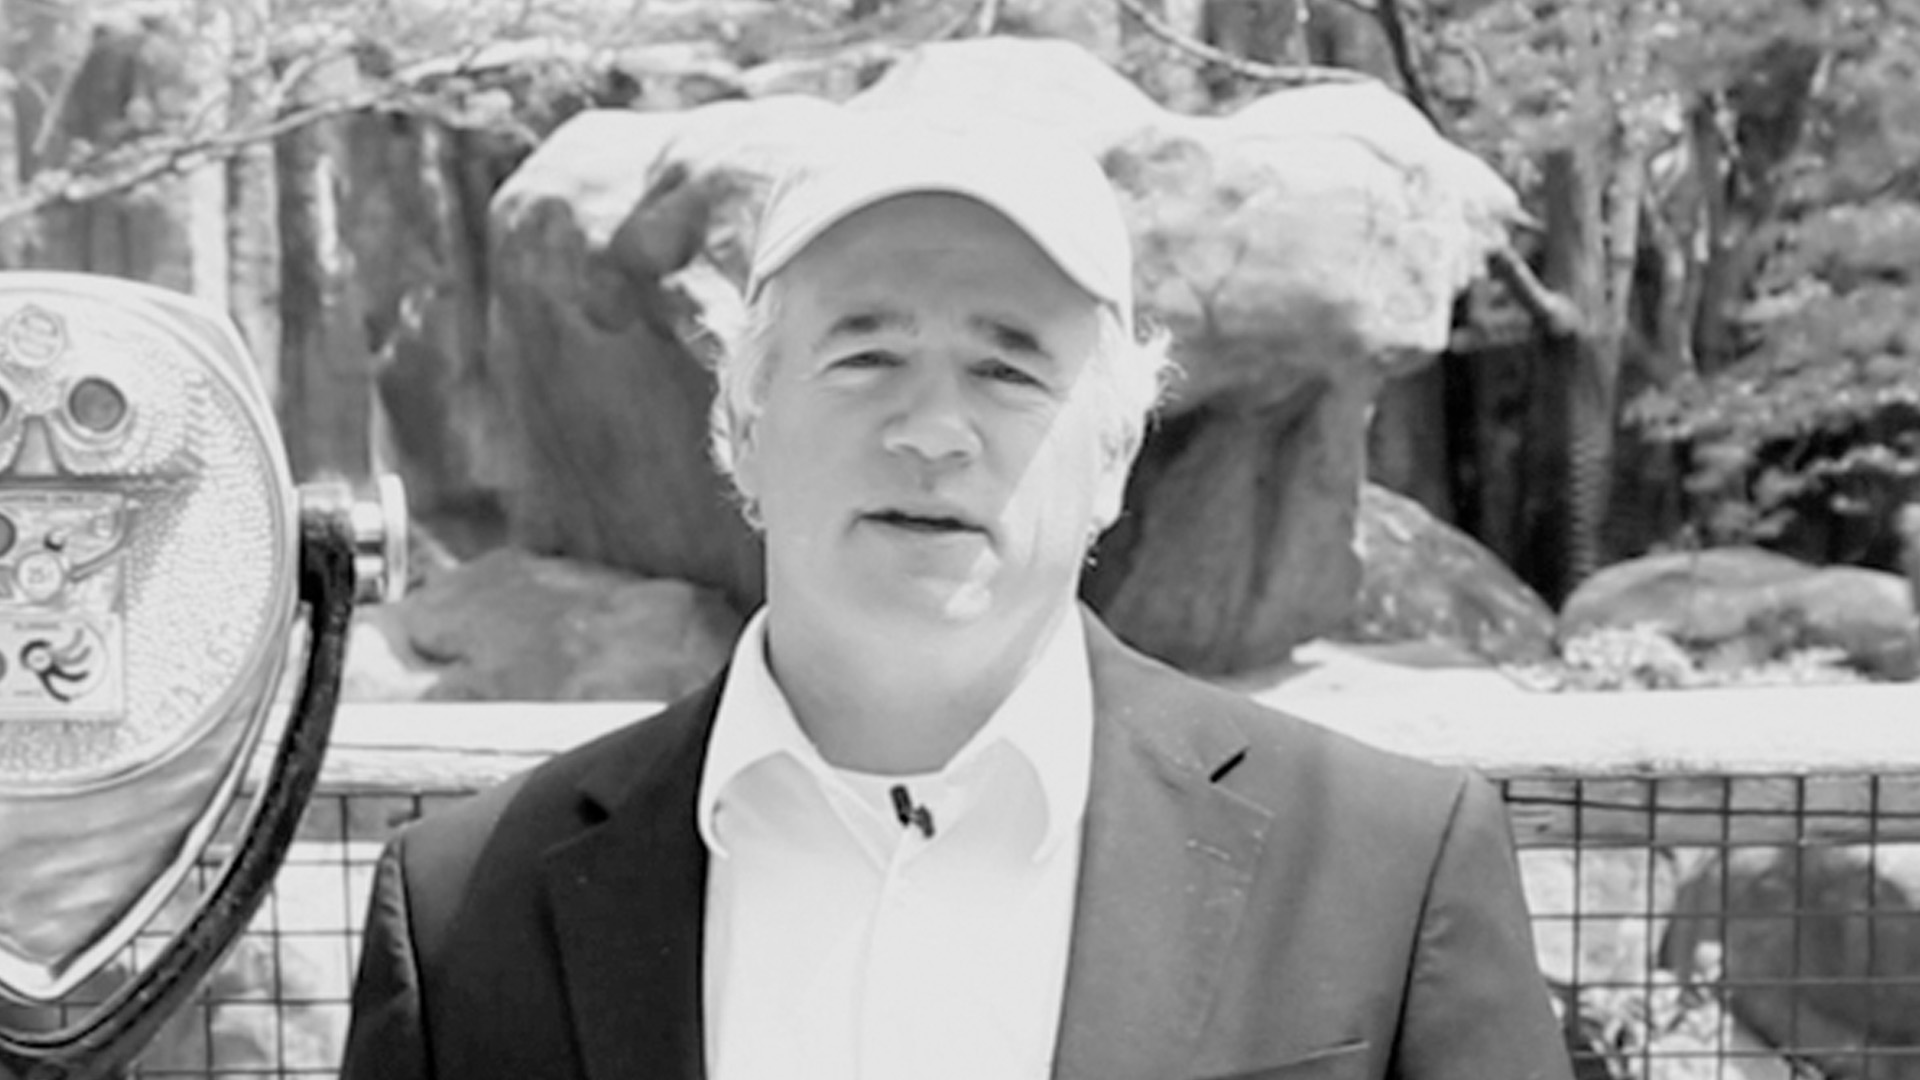 marlo marketing video testimonials. John Linehan, president and CEO of Zoo New England